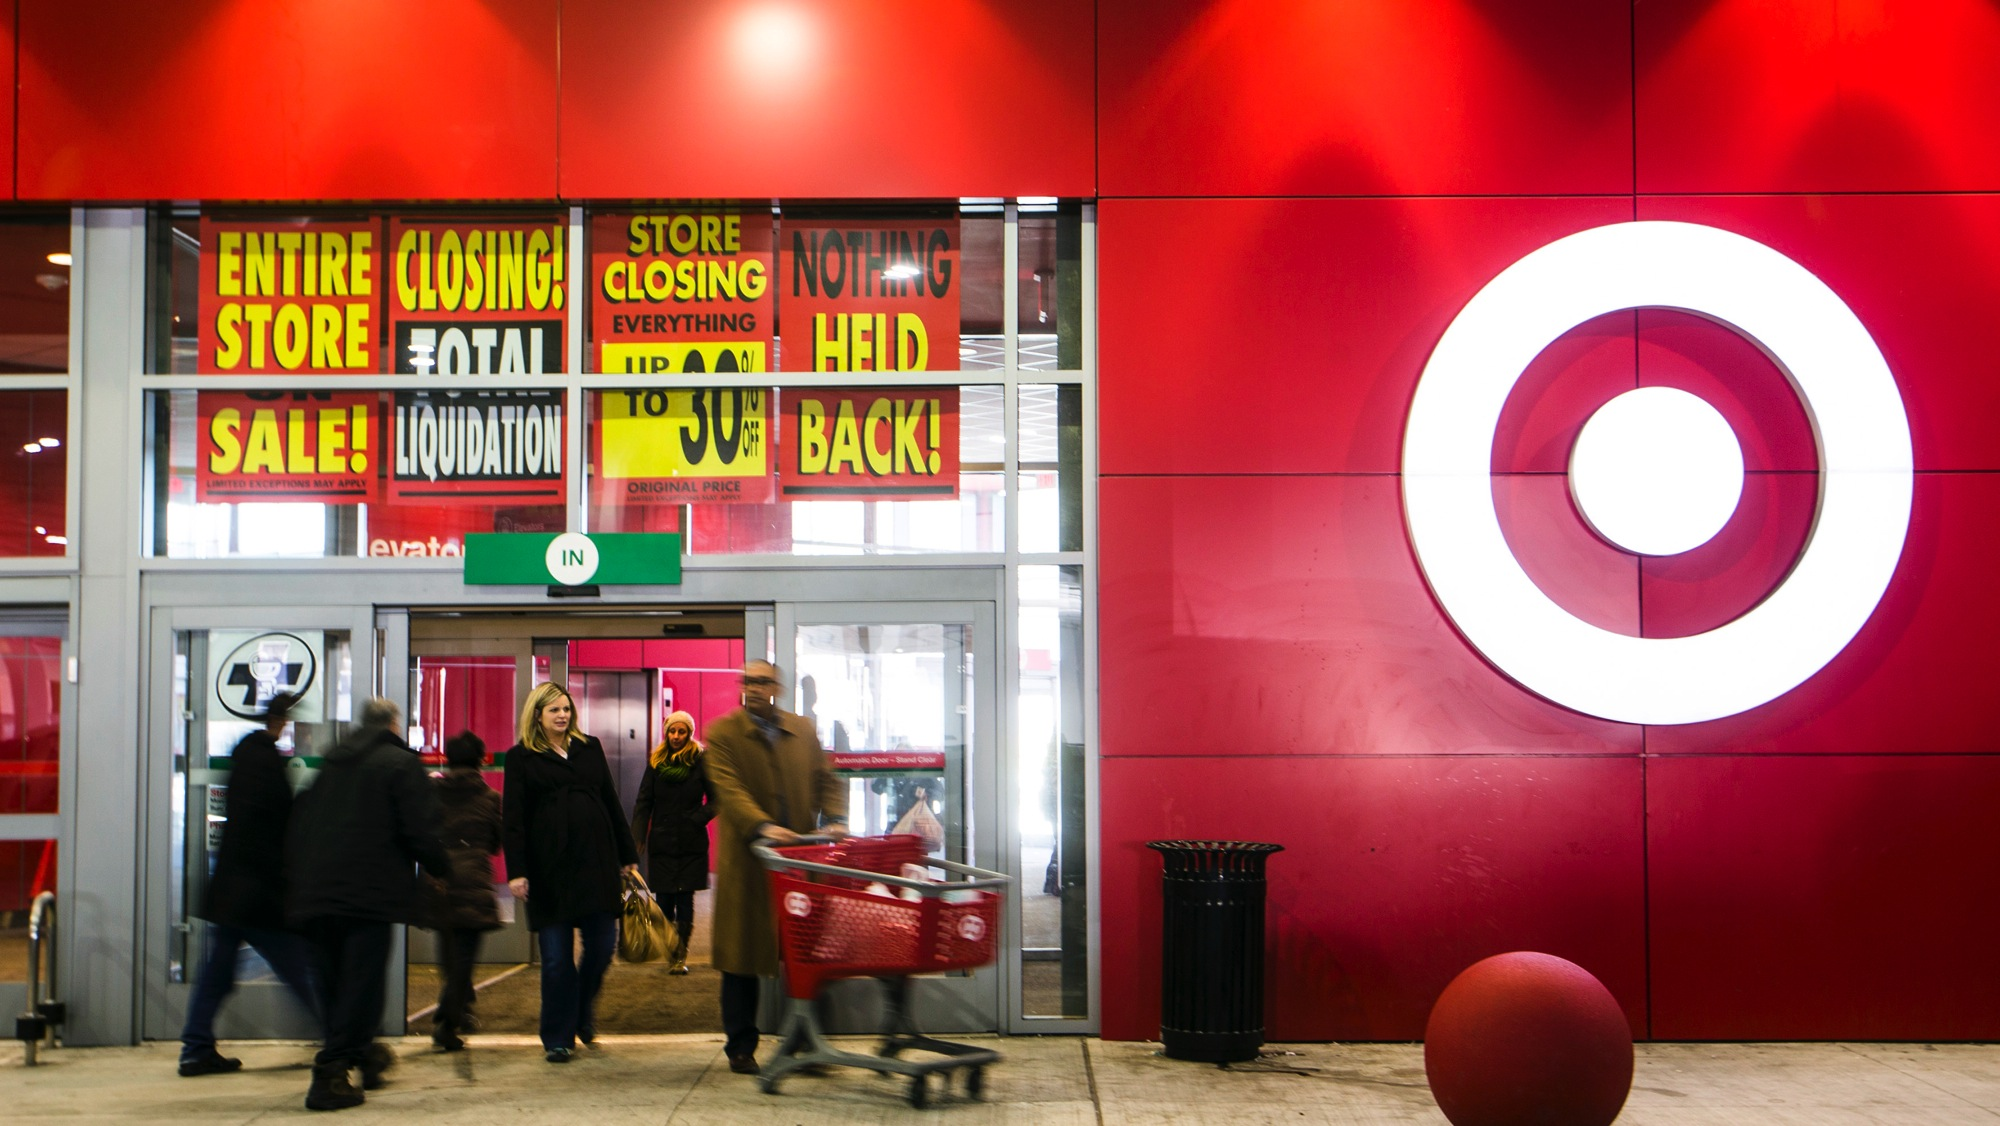 People walk out of the going-out-of-business sale at Target Canada in Toronto February 5, 2015. Target Corp is closing its stores in Canada after the insolvent retailer came to an agreement with its landlords to start liquidation. REUTERS/Mark Blinch (CANADA - Tags: BUSINESS)